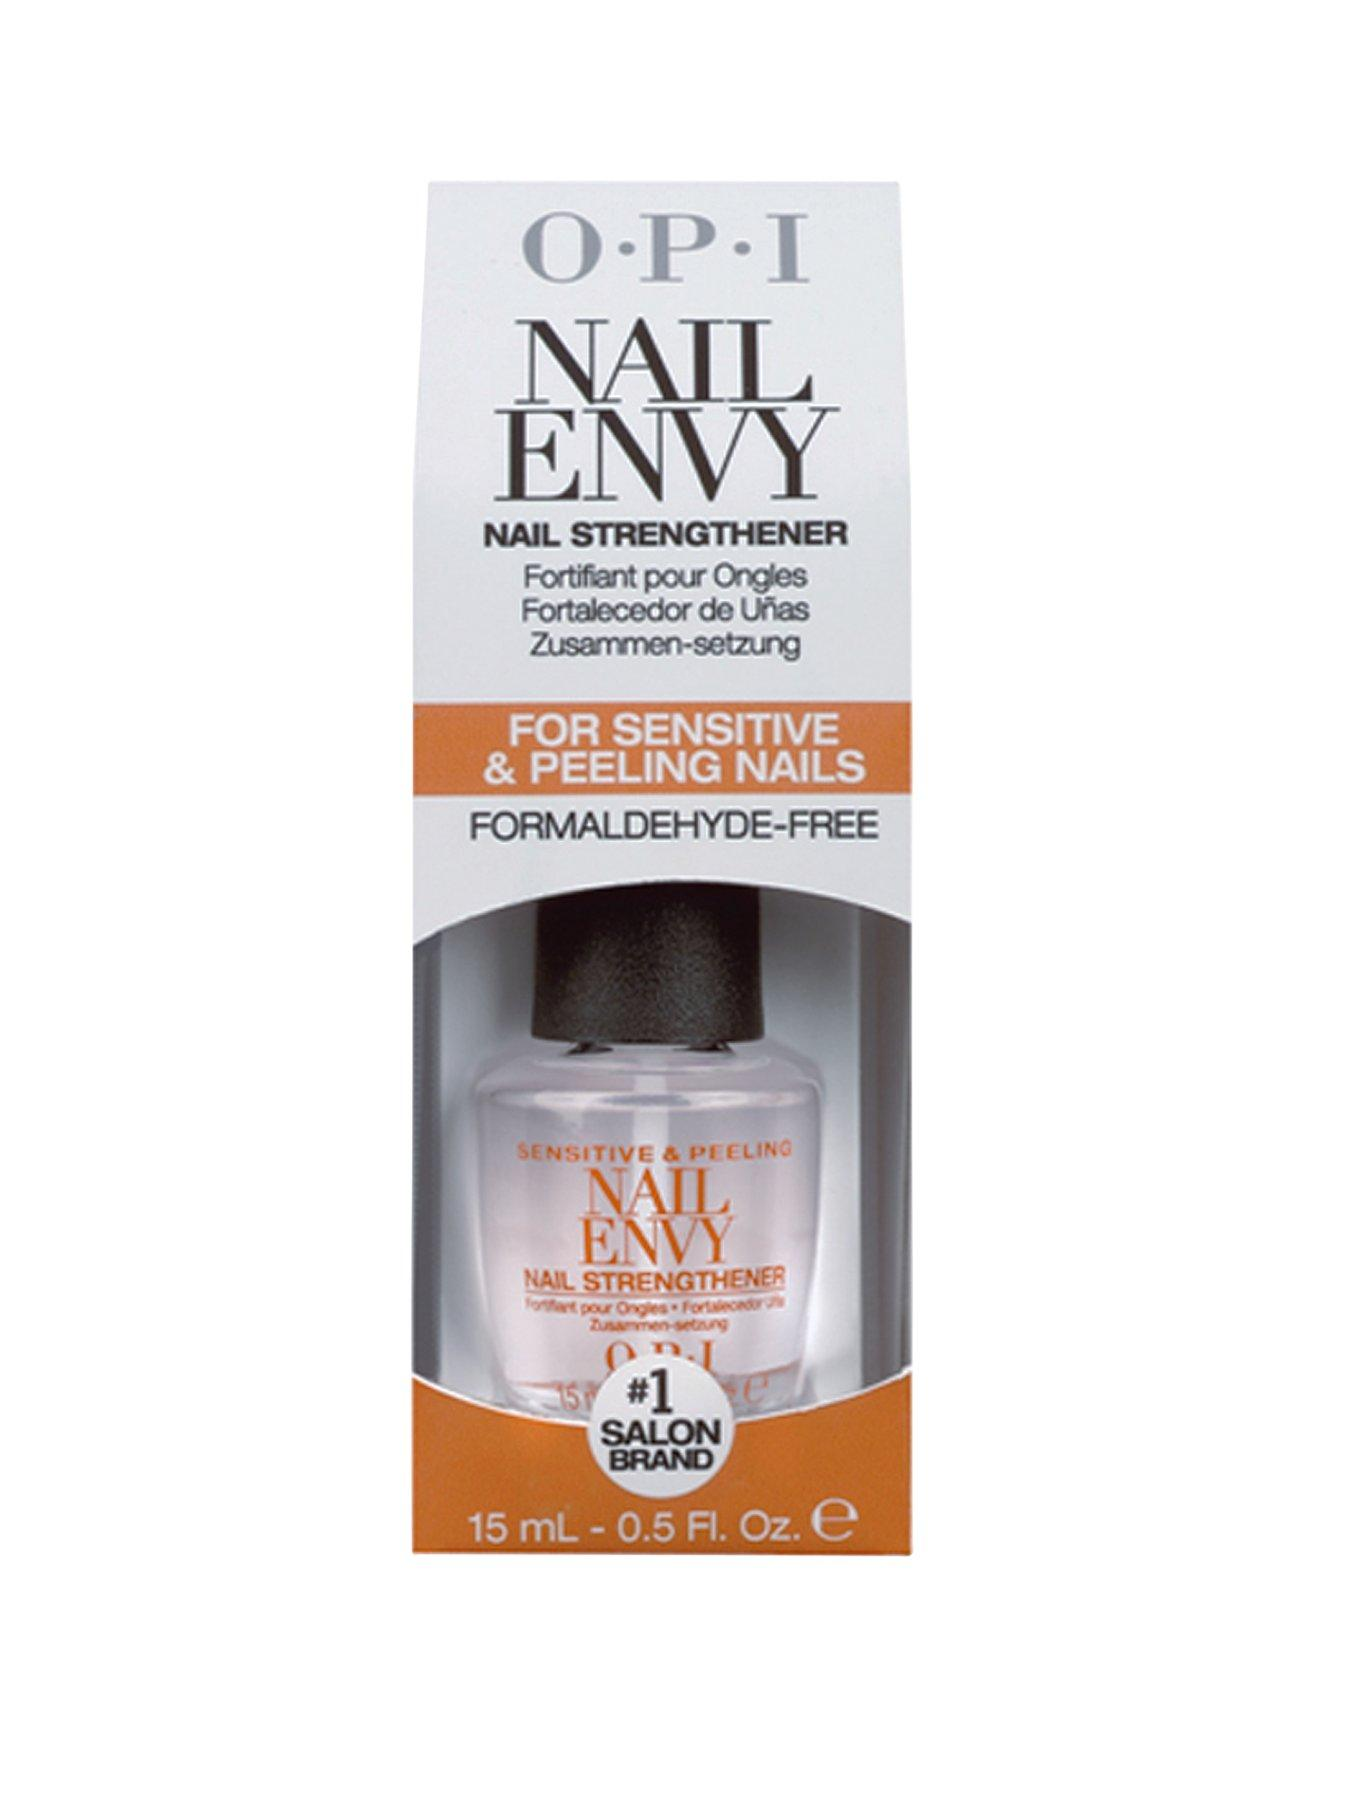 OPI Nail polish - Nail Envy - Sensitive & Peeling 15ml